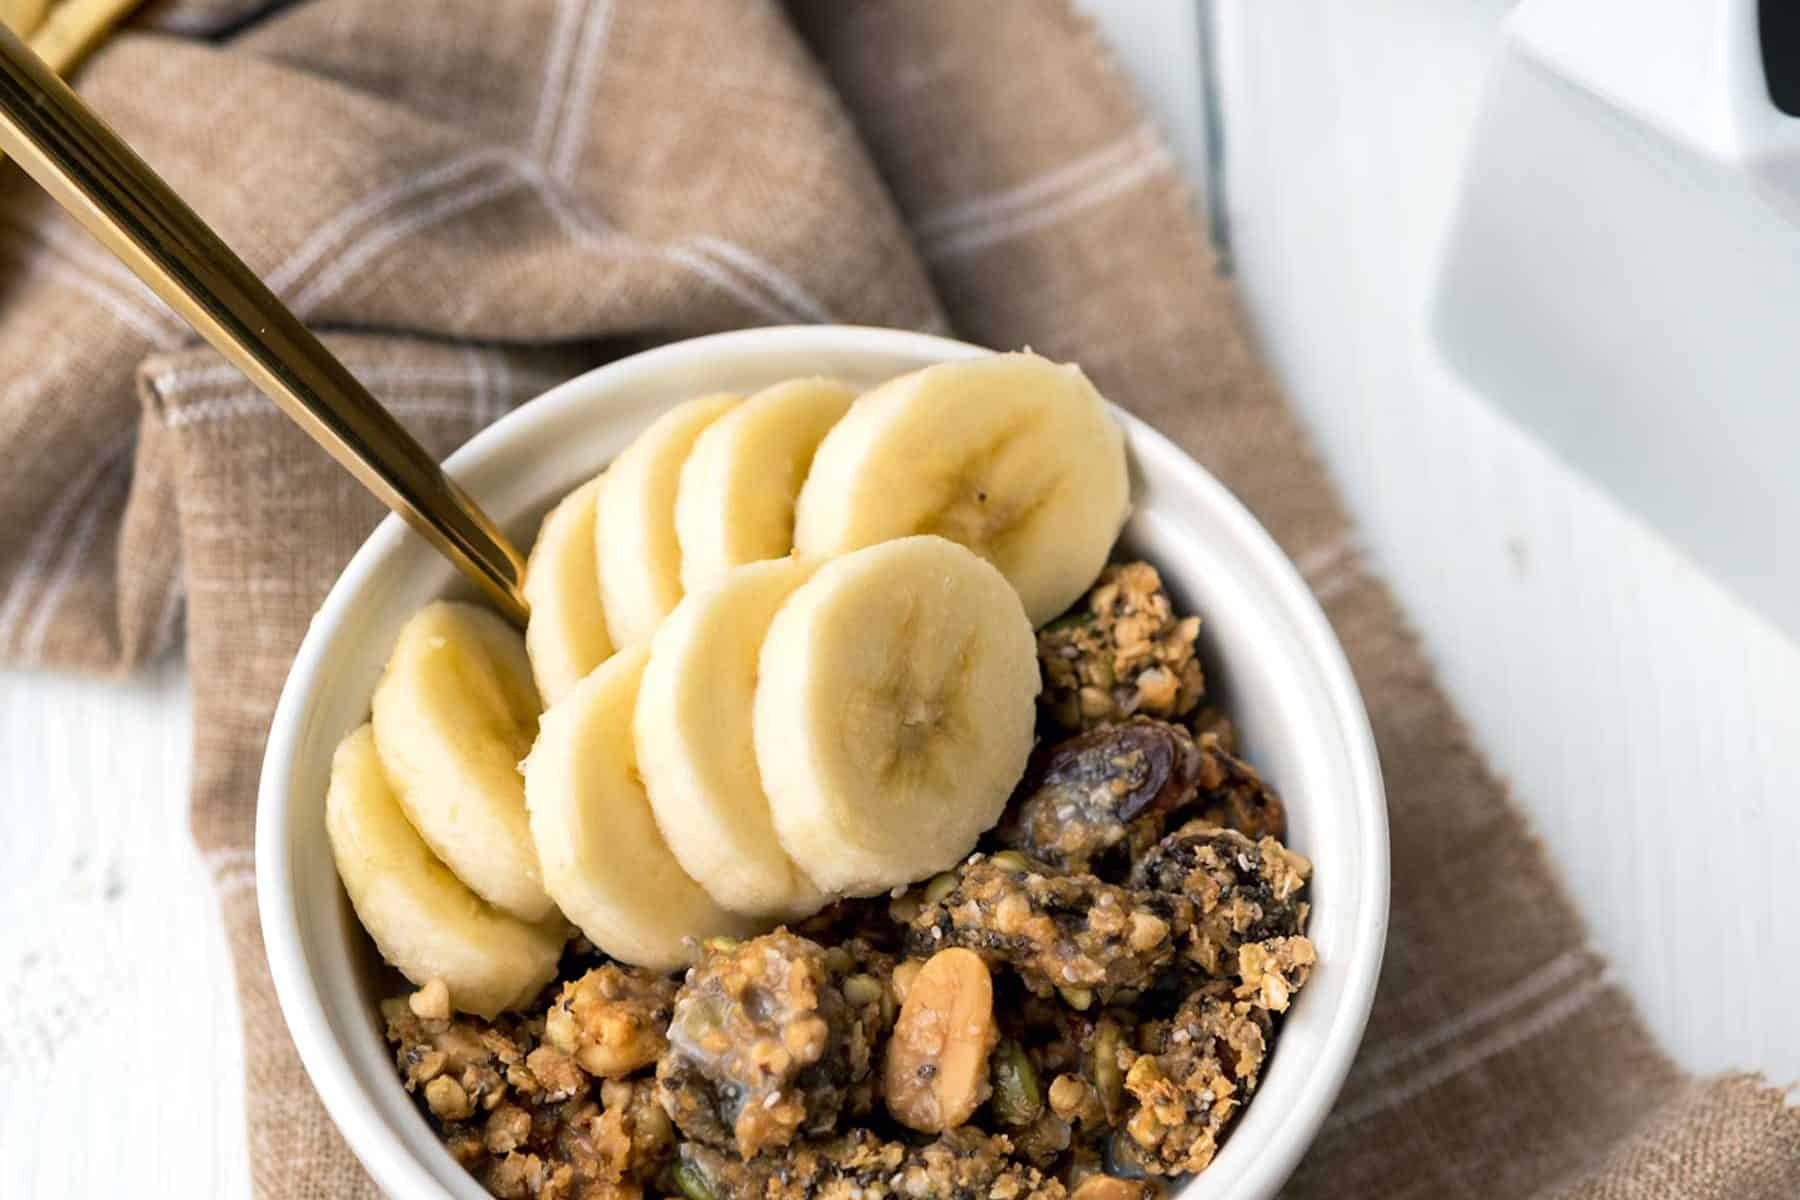 Image of granola in a white bowl with banana slices, over a brown linen